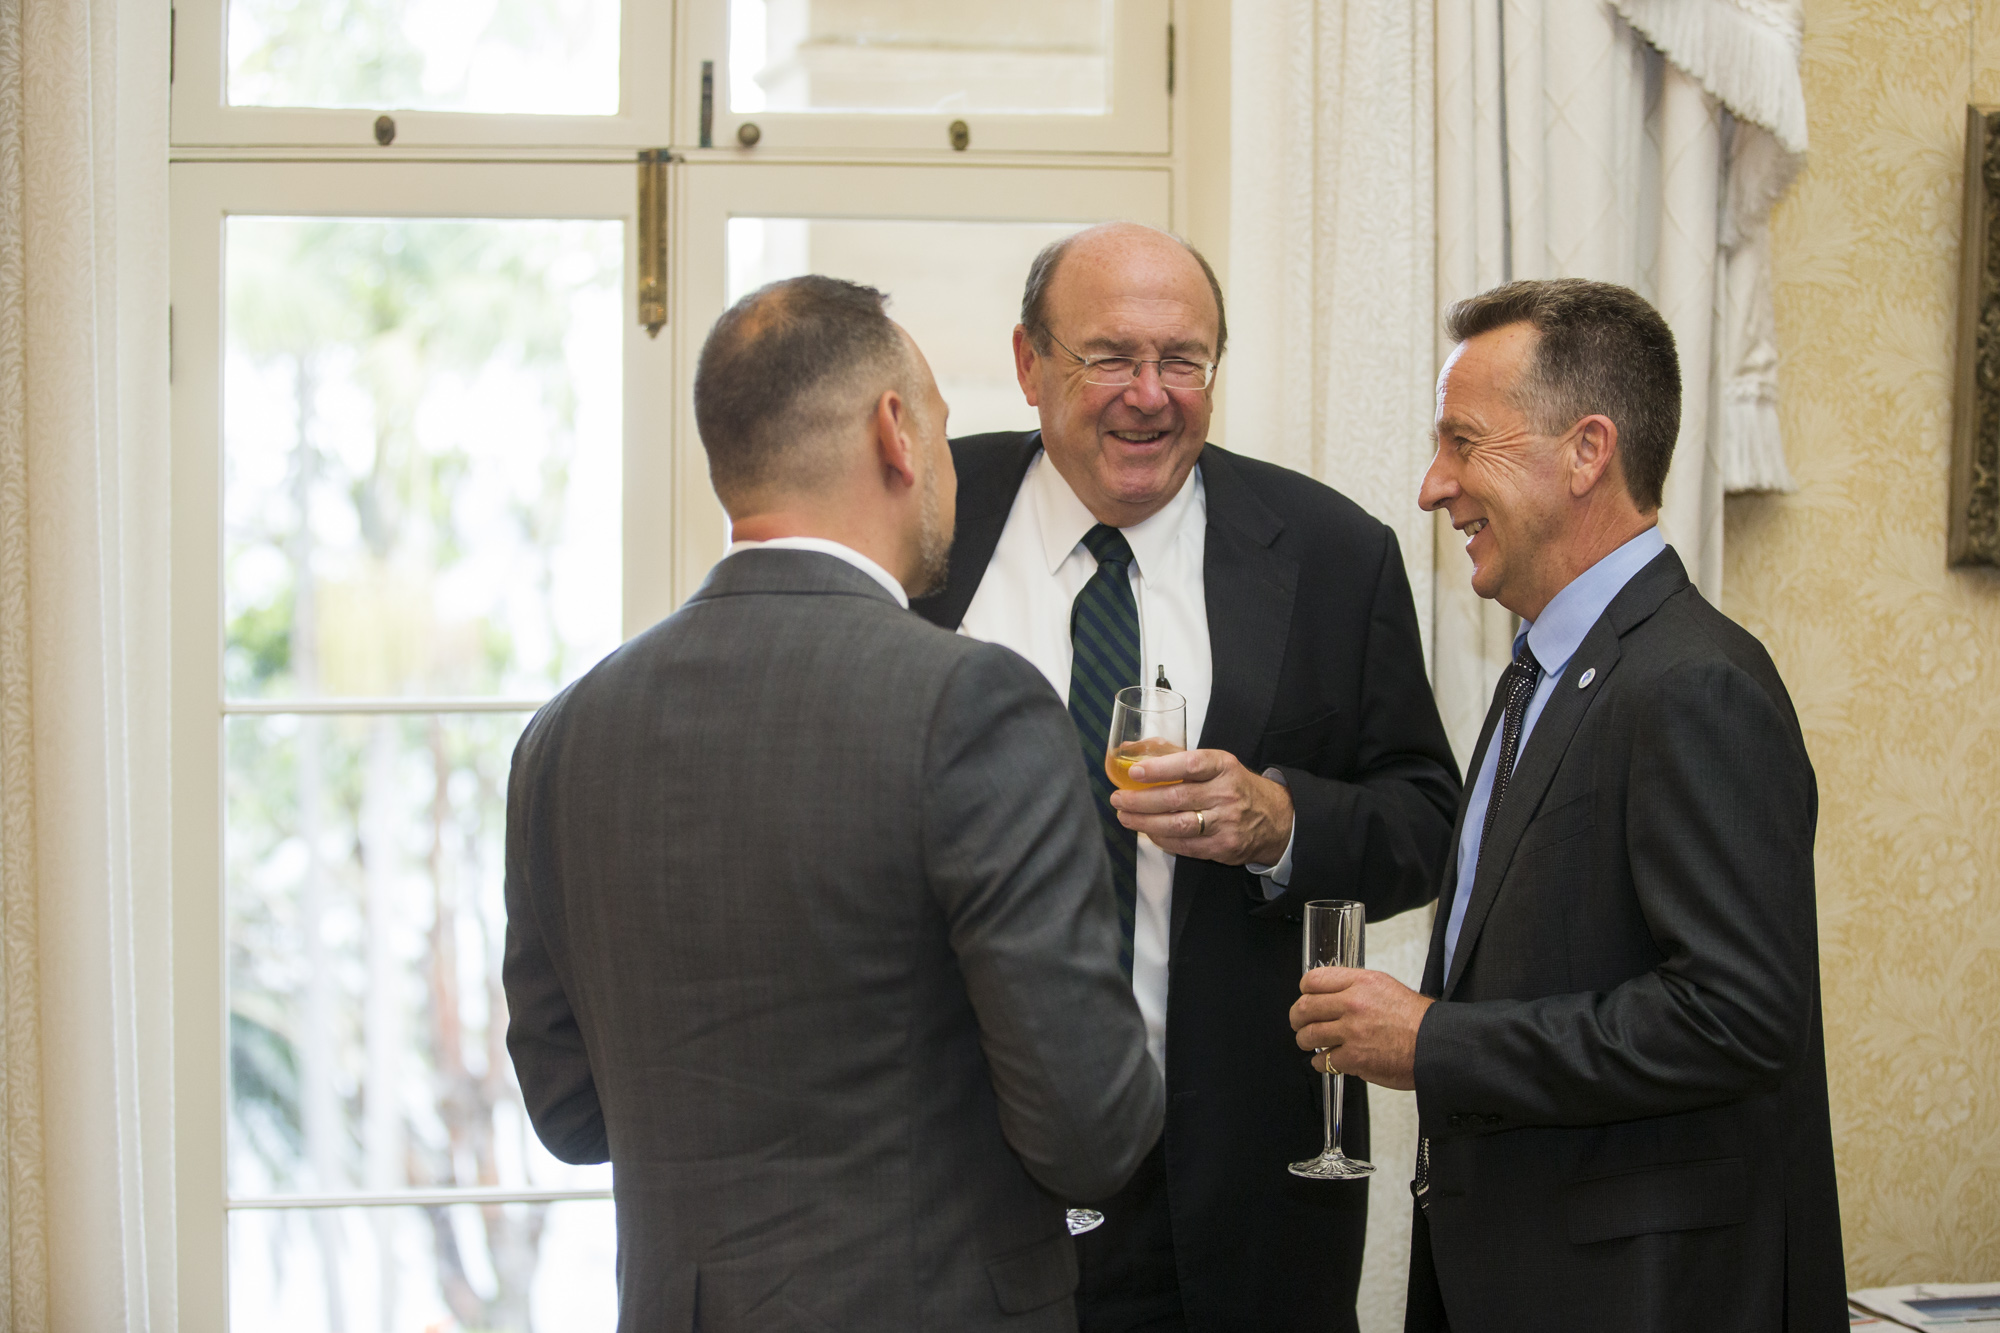 Chair Macquarie Bank, Peter Warne and Australian Antarctic Division Former Director Nick Gales share a joke with Troy Guenther